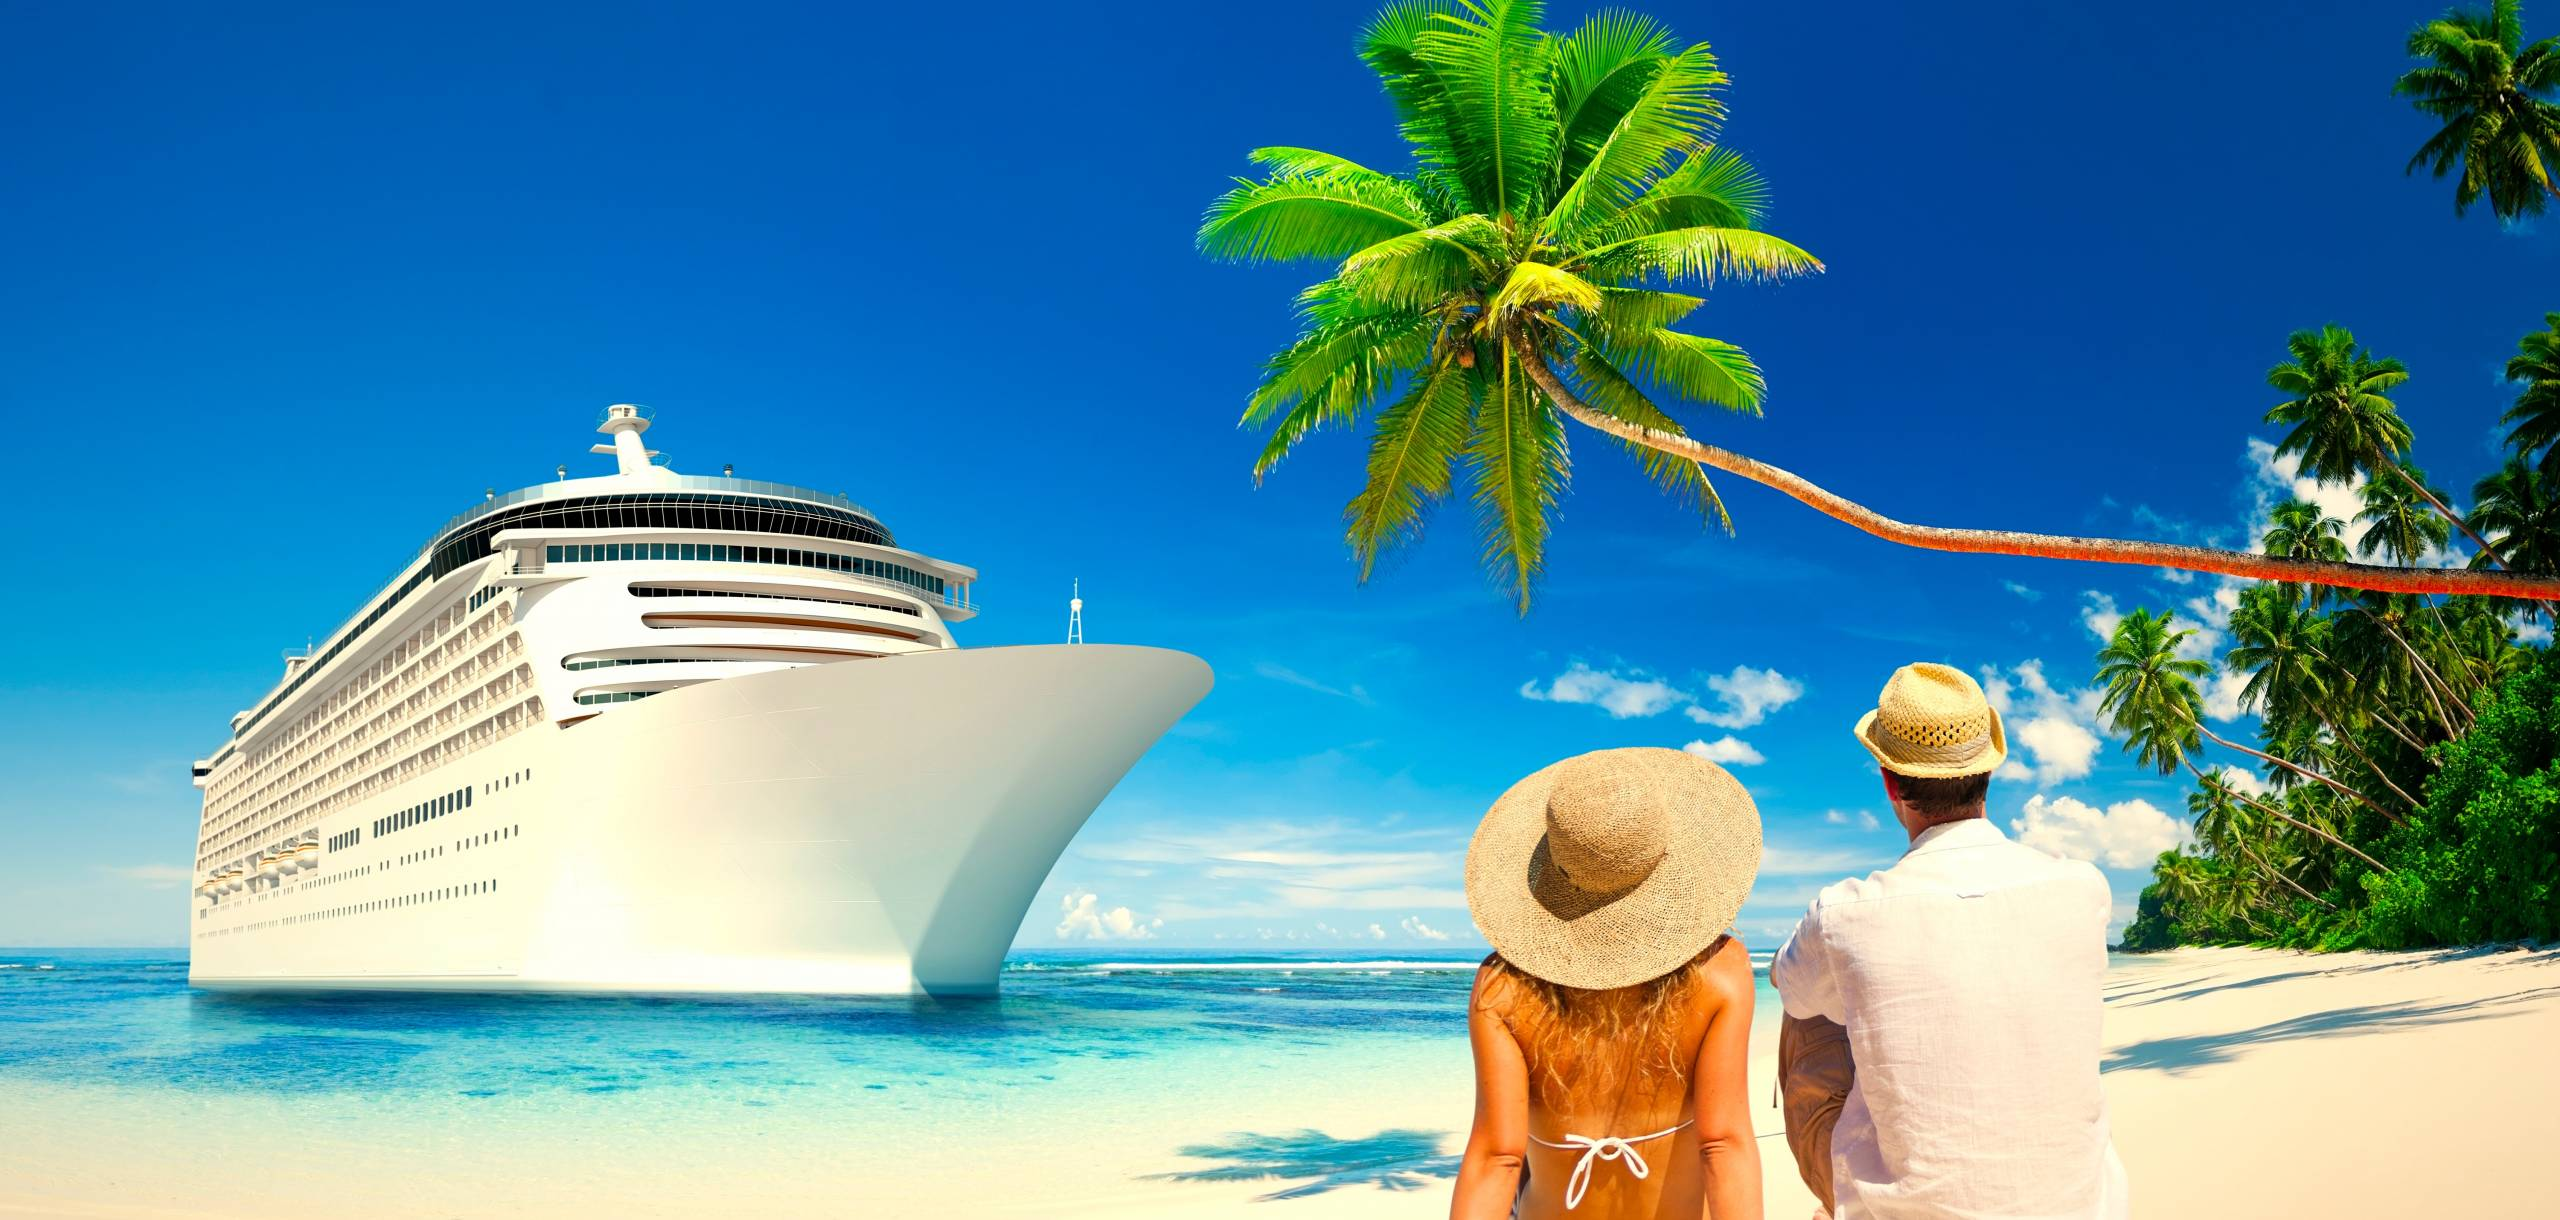 HaveTravel Cruise Ship & Couple